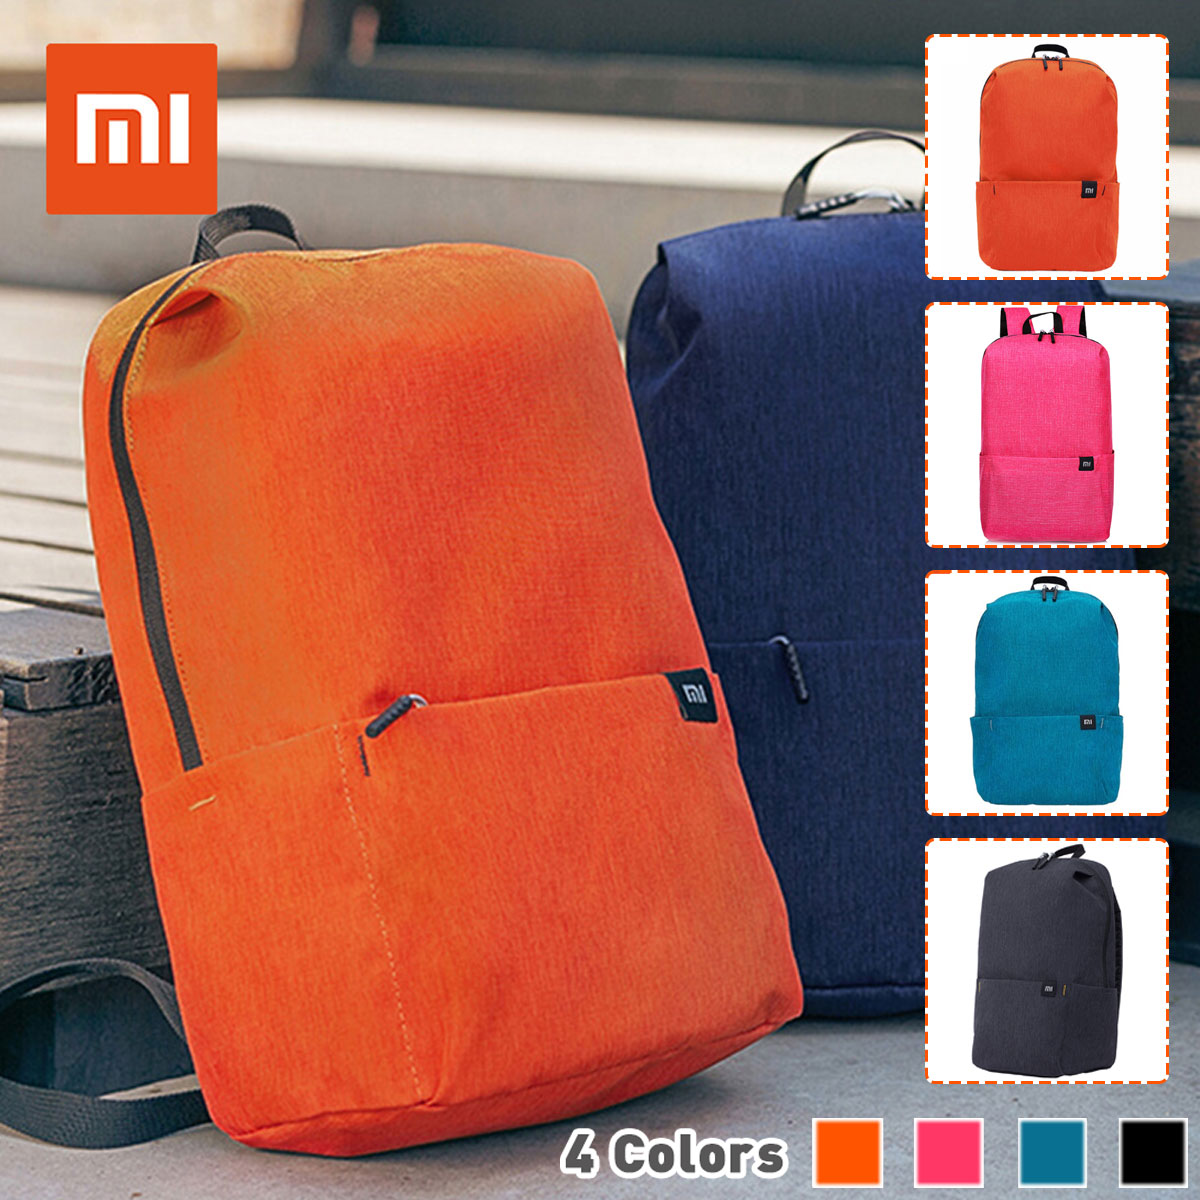 XIAOMI Mini Backpack Bag 10L School Bags For Women Men Boy Girl Daypack Water Resistant Lightweight Portable Casual Travel Bag